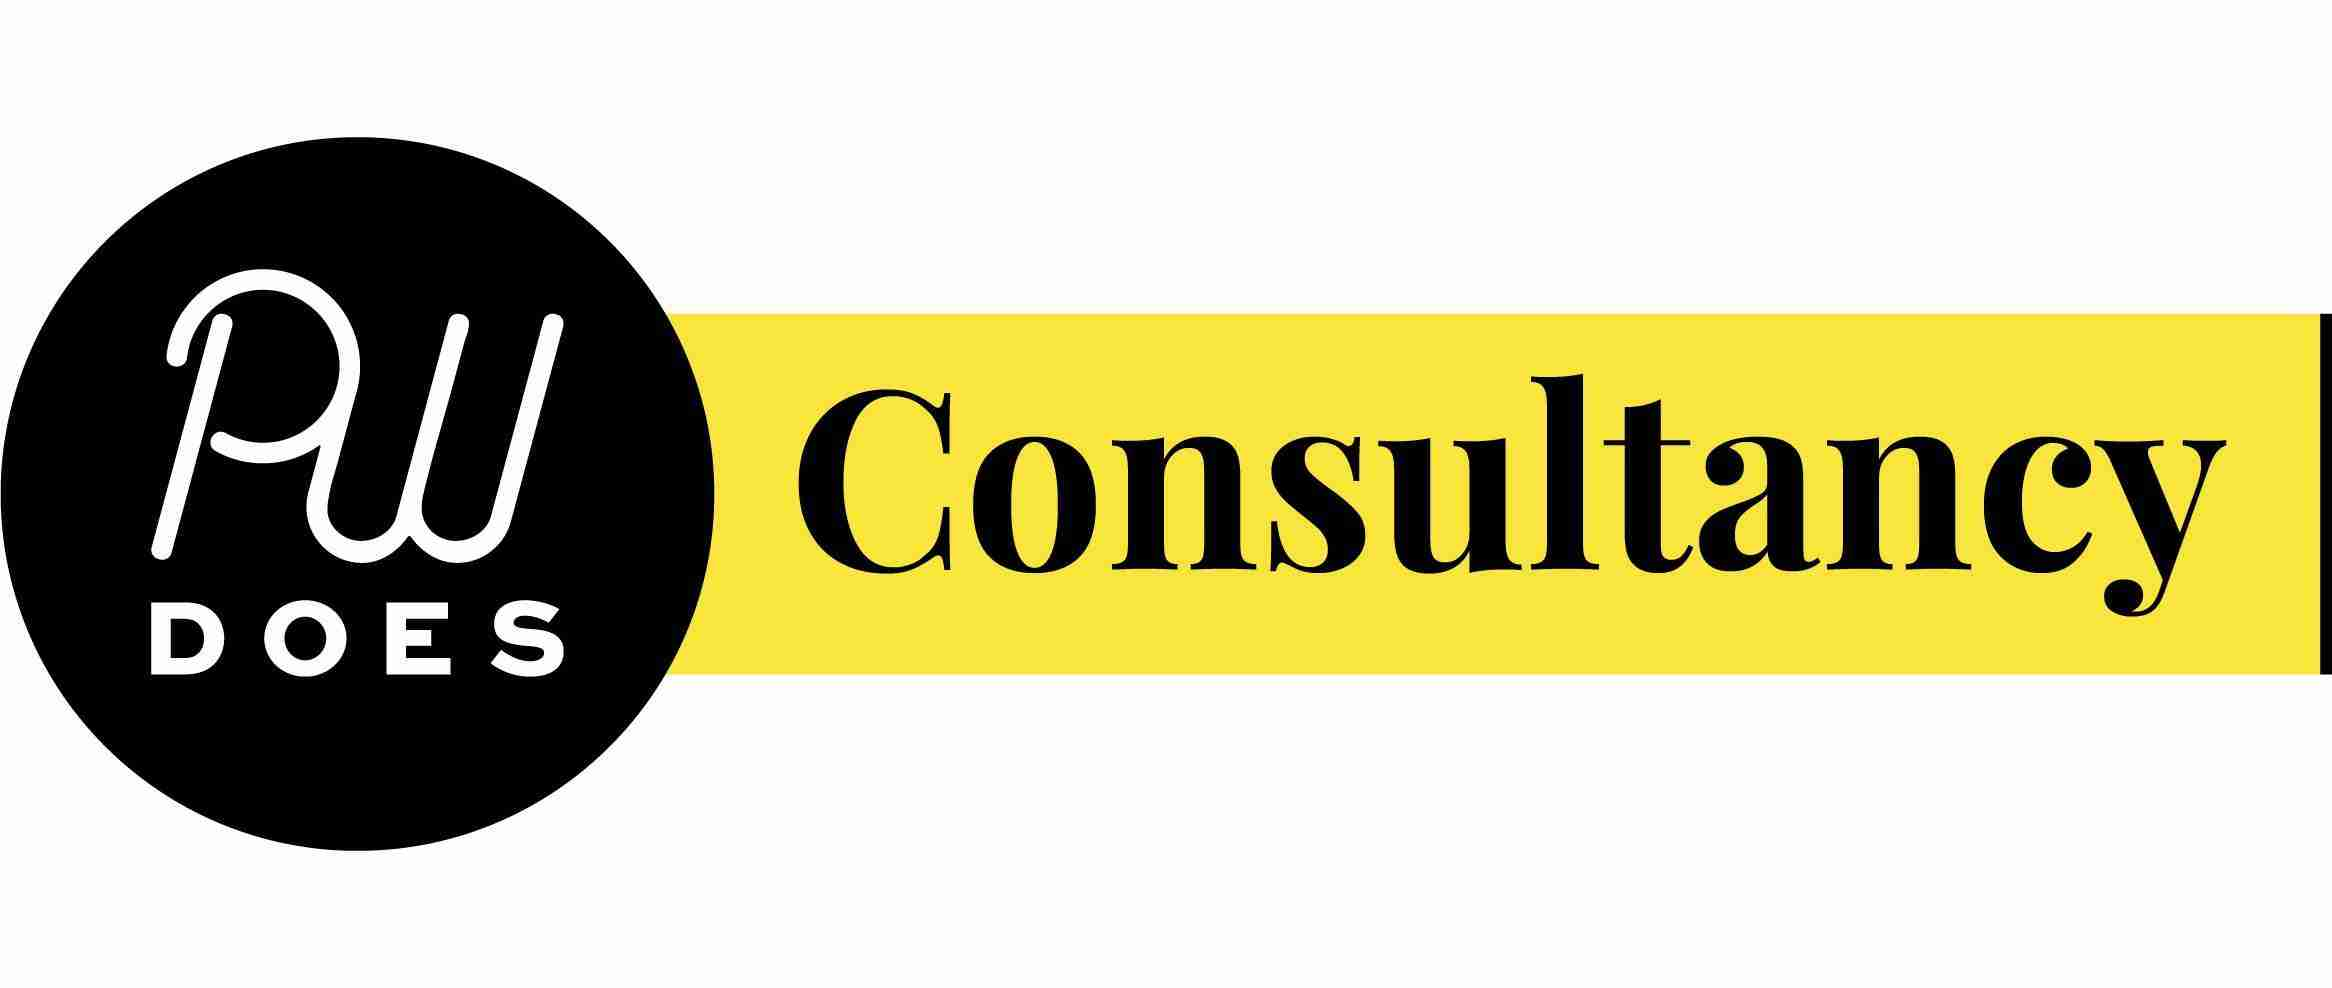 PW Does... Freelance Marketing Consultancy